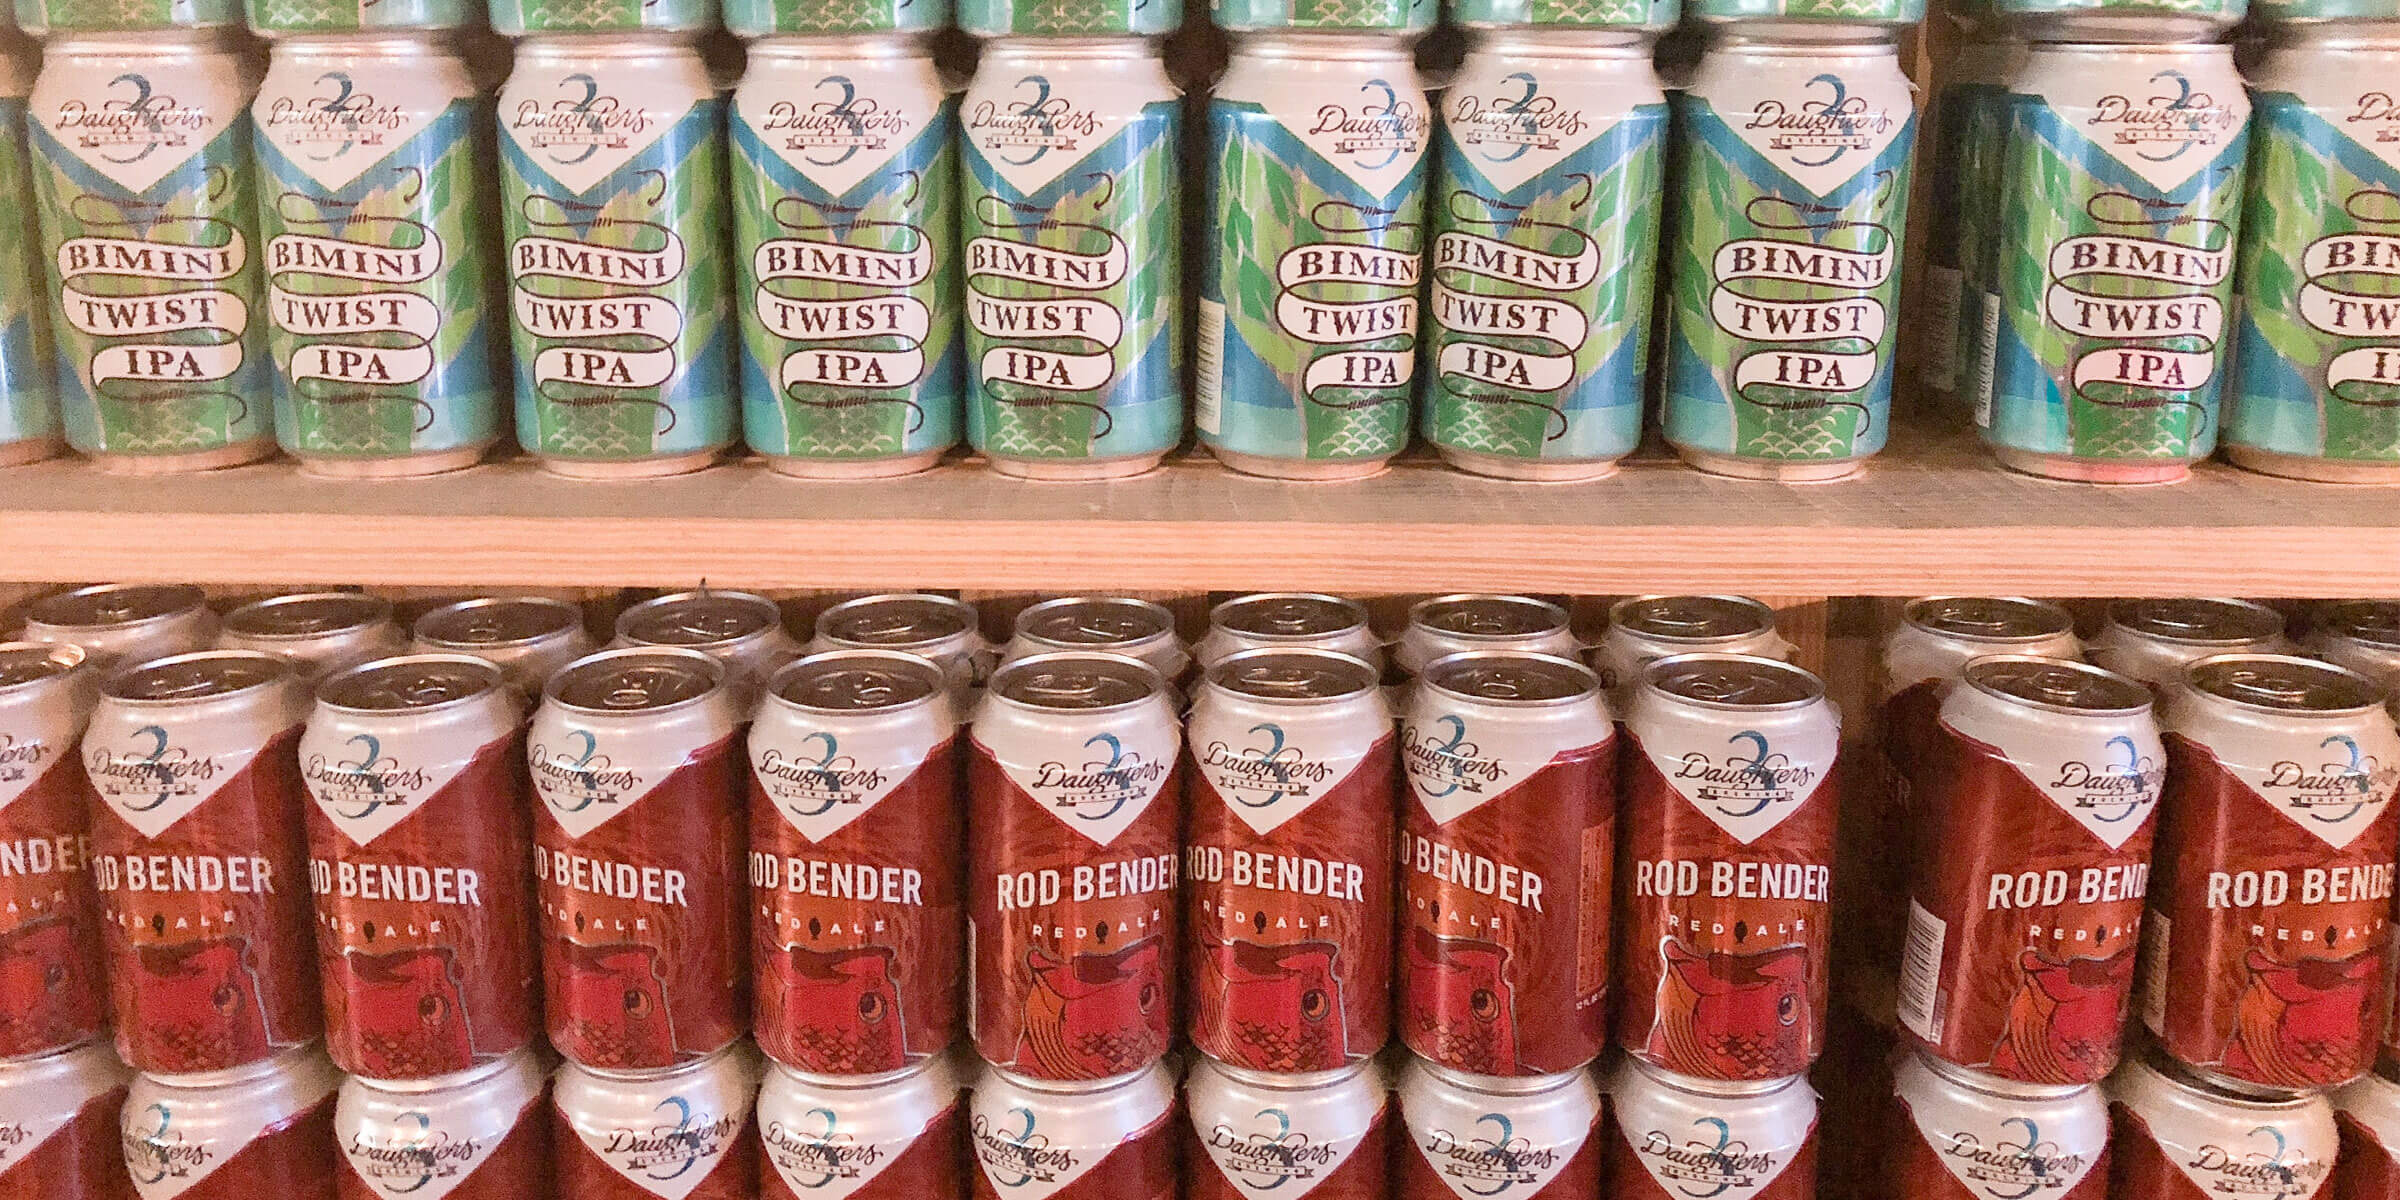 Rows of canned beers offered by 3 Daughters Brewing